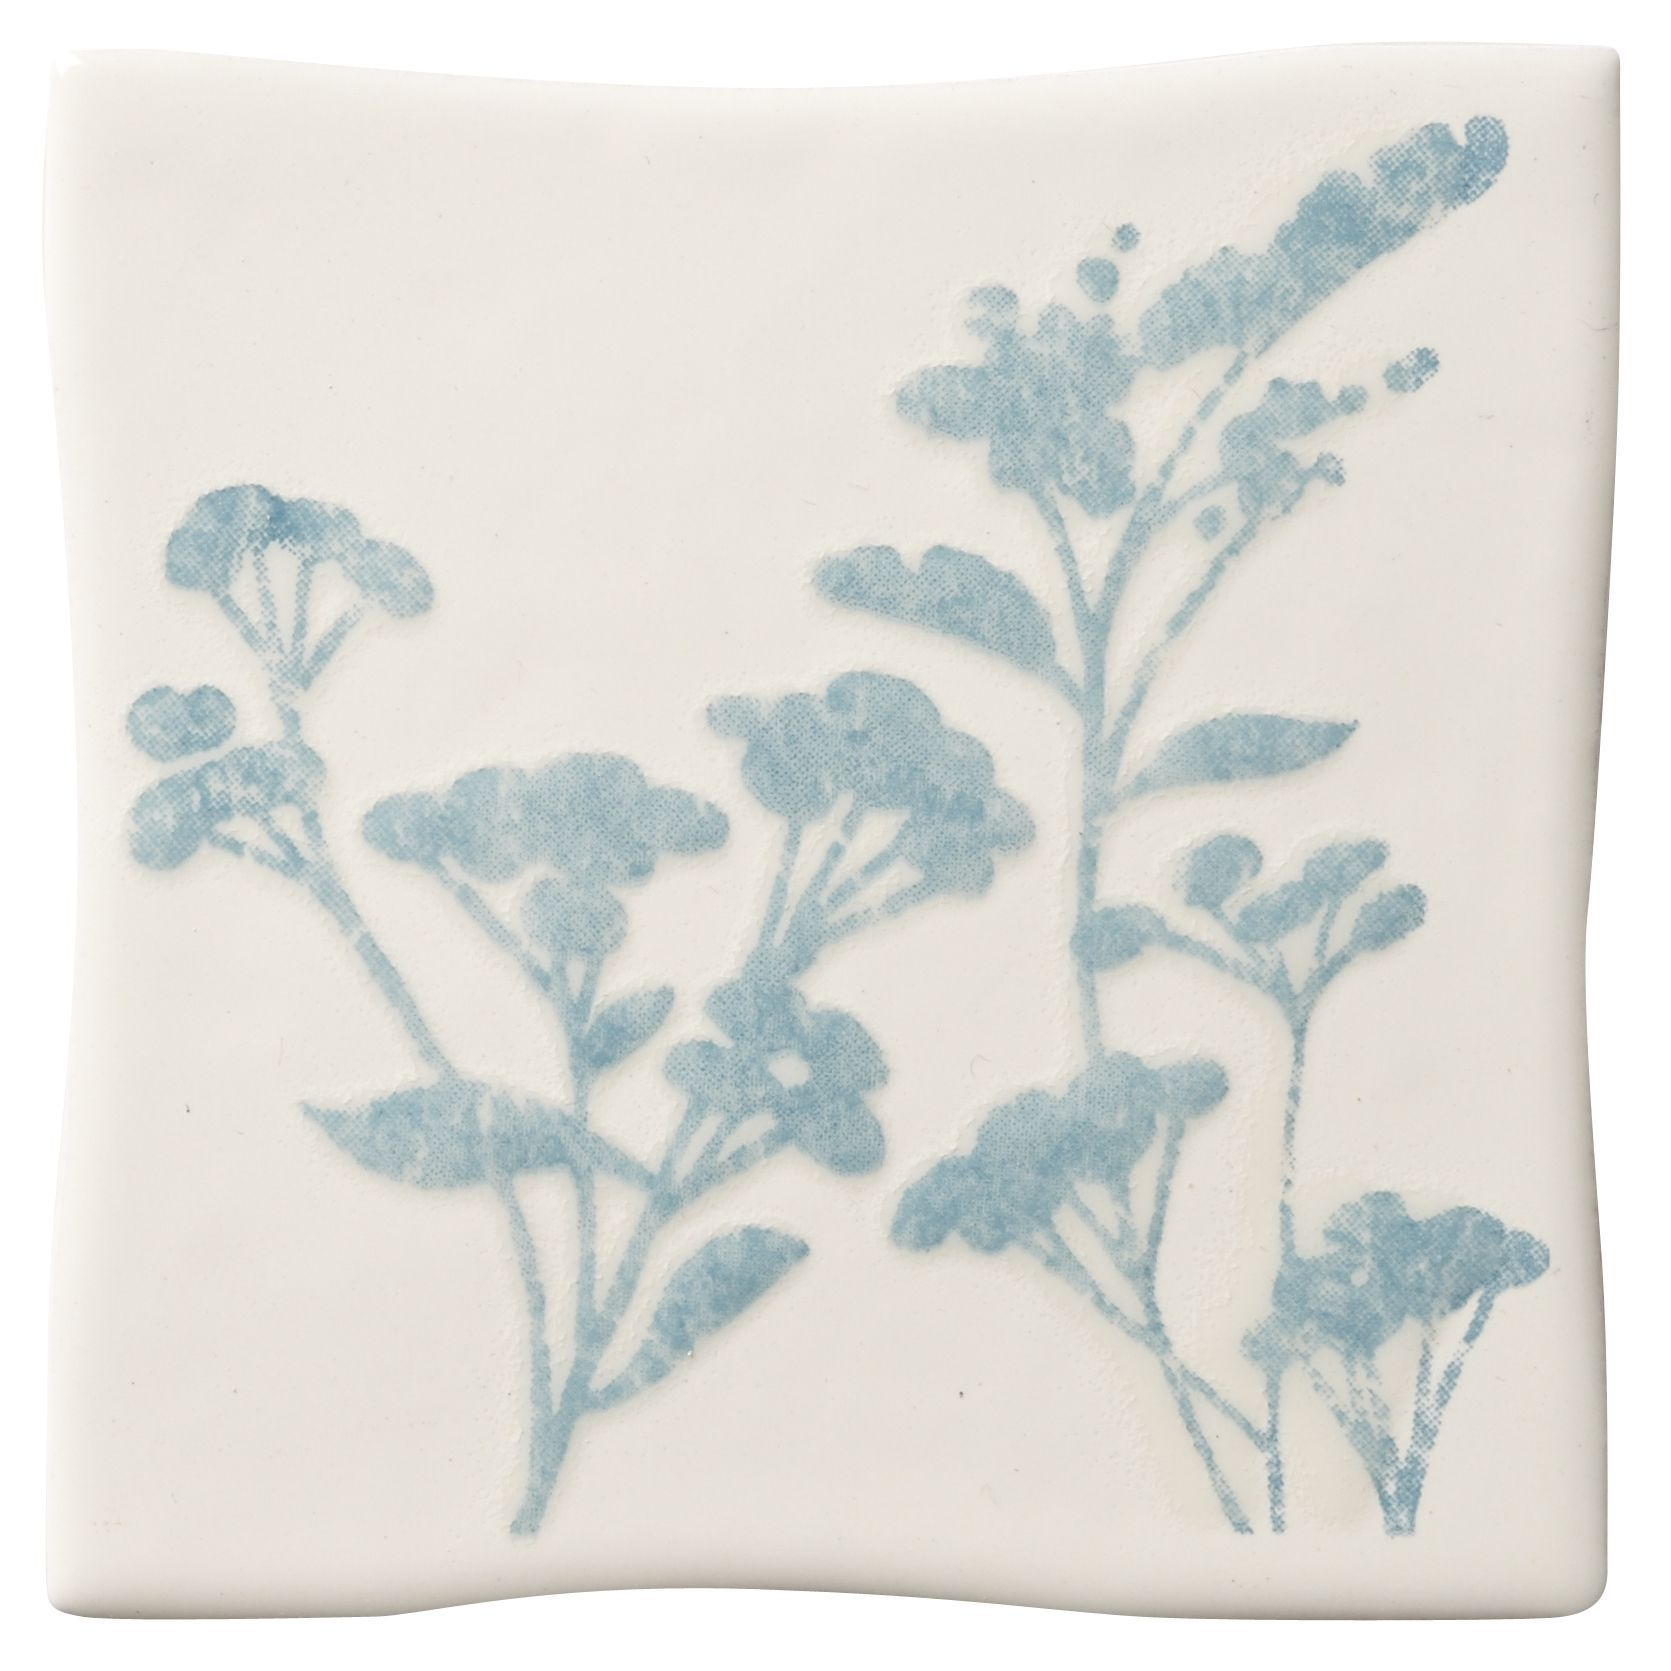 Padstow Sky Blue Ceramic Wall Tile, (L)100mm (W)100mm   Departments ...